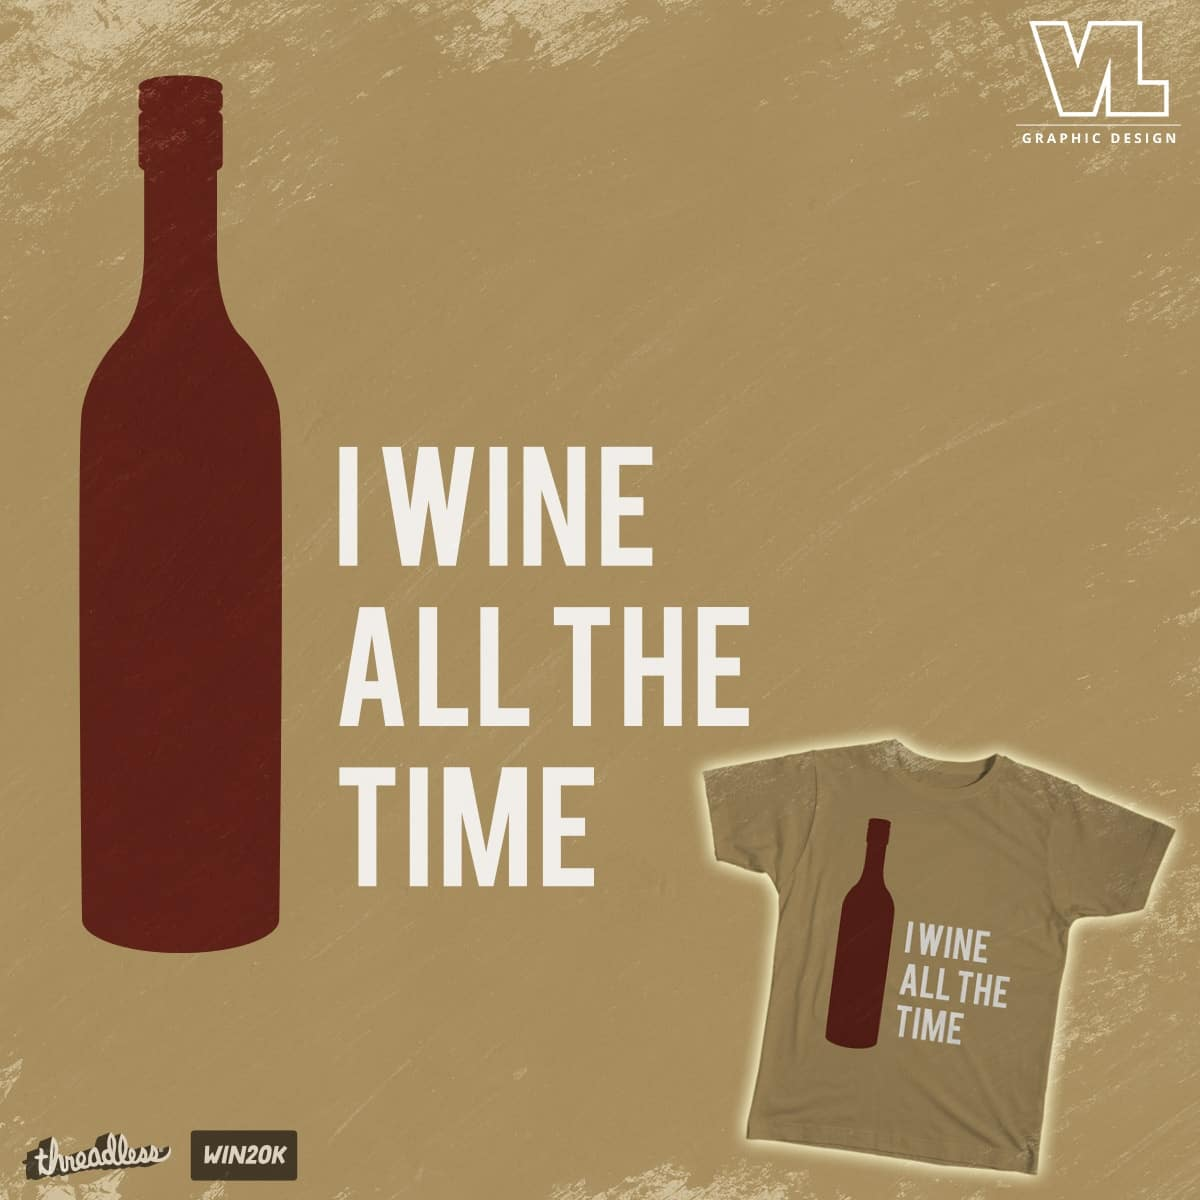 Winery by vectoredlife on Threadless